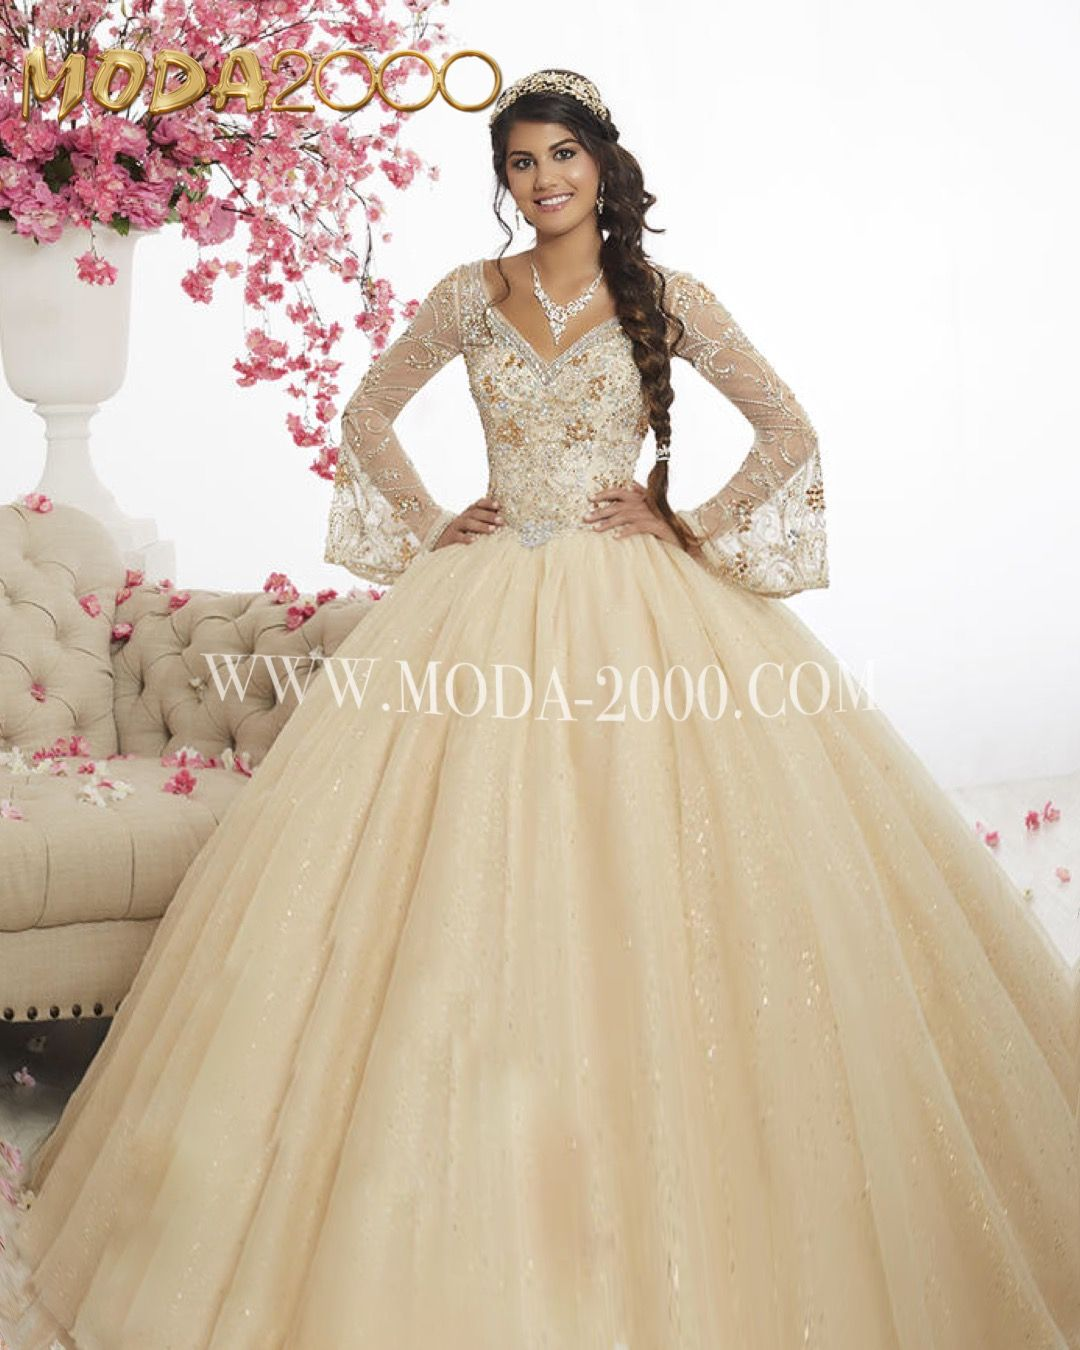 Long Sleeve Champagne Quinceanera Dress No Ruffles Available At Moda 2000 Instagram Moda2000in Satin Homecoming Dress Quinceanera Dresses Quince Dresses [ 1350 x 1080 Pixel ]